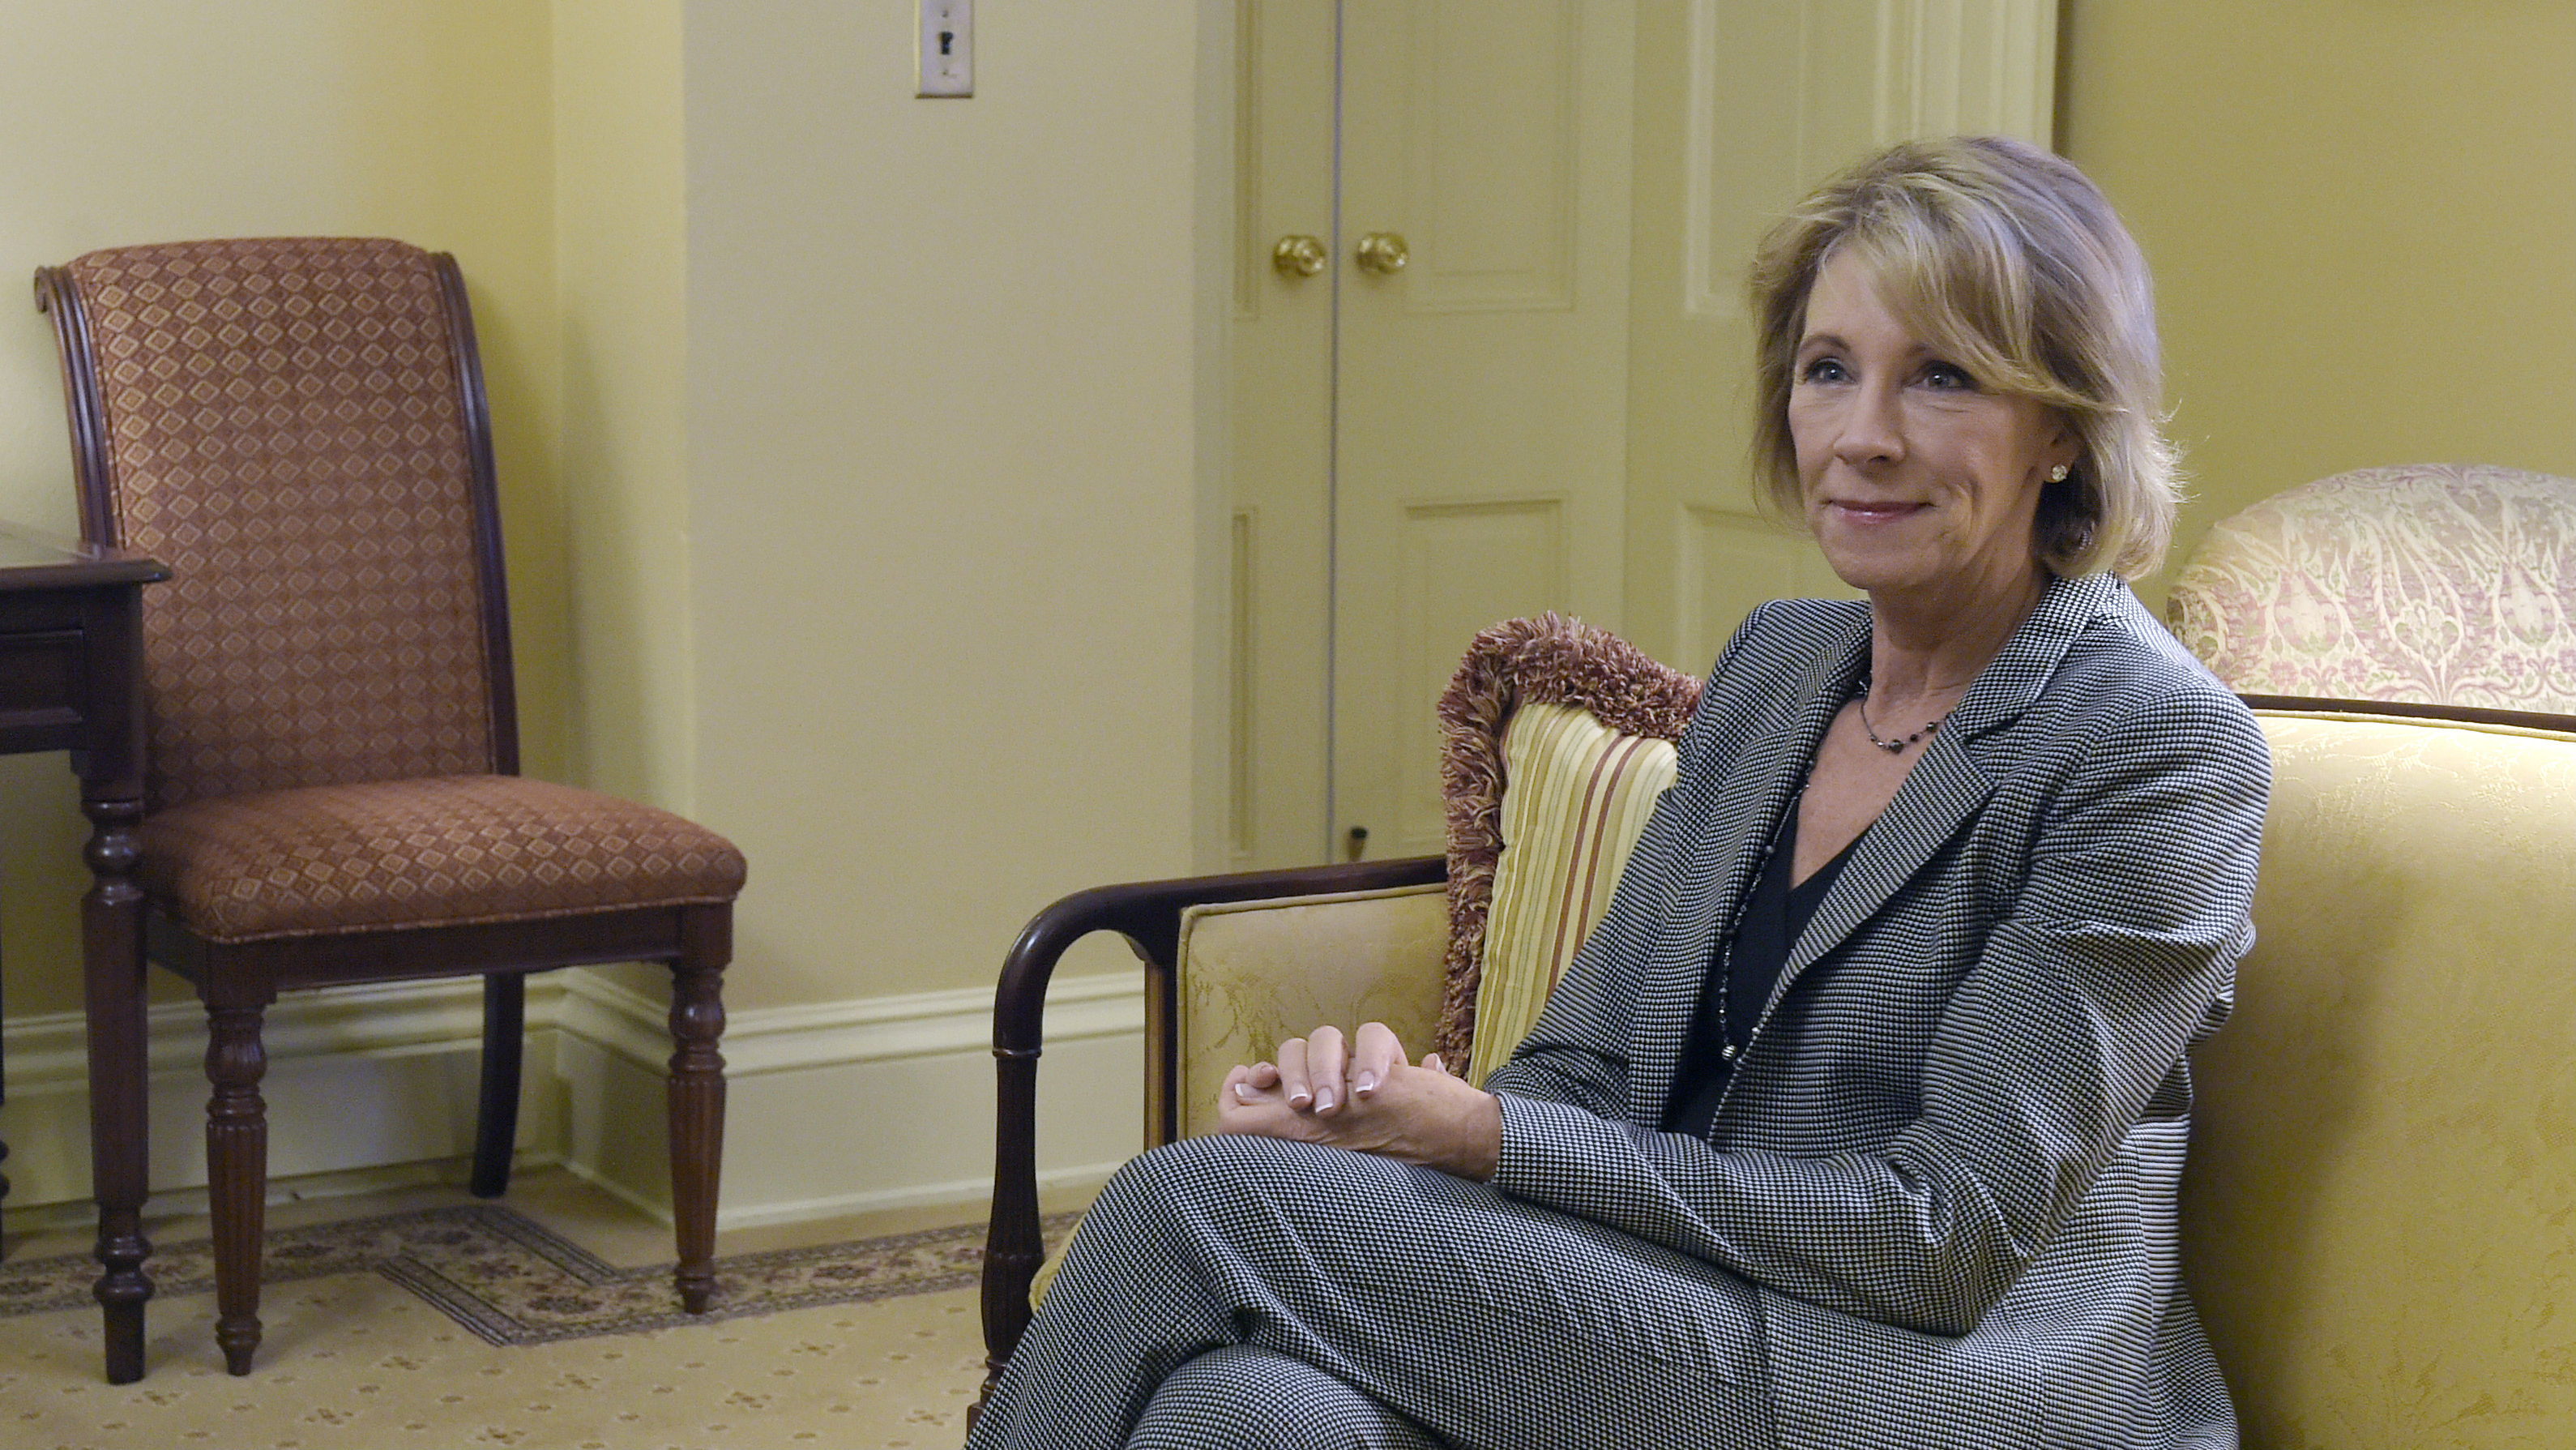 Betsy DeVos sits on a couch.